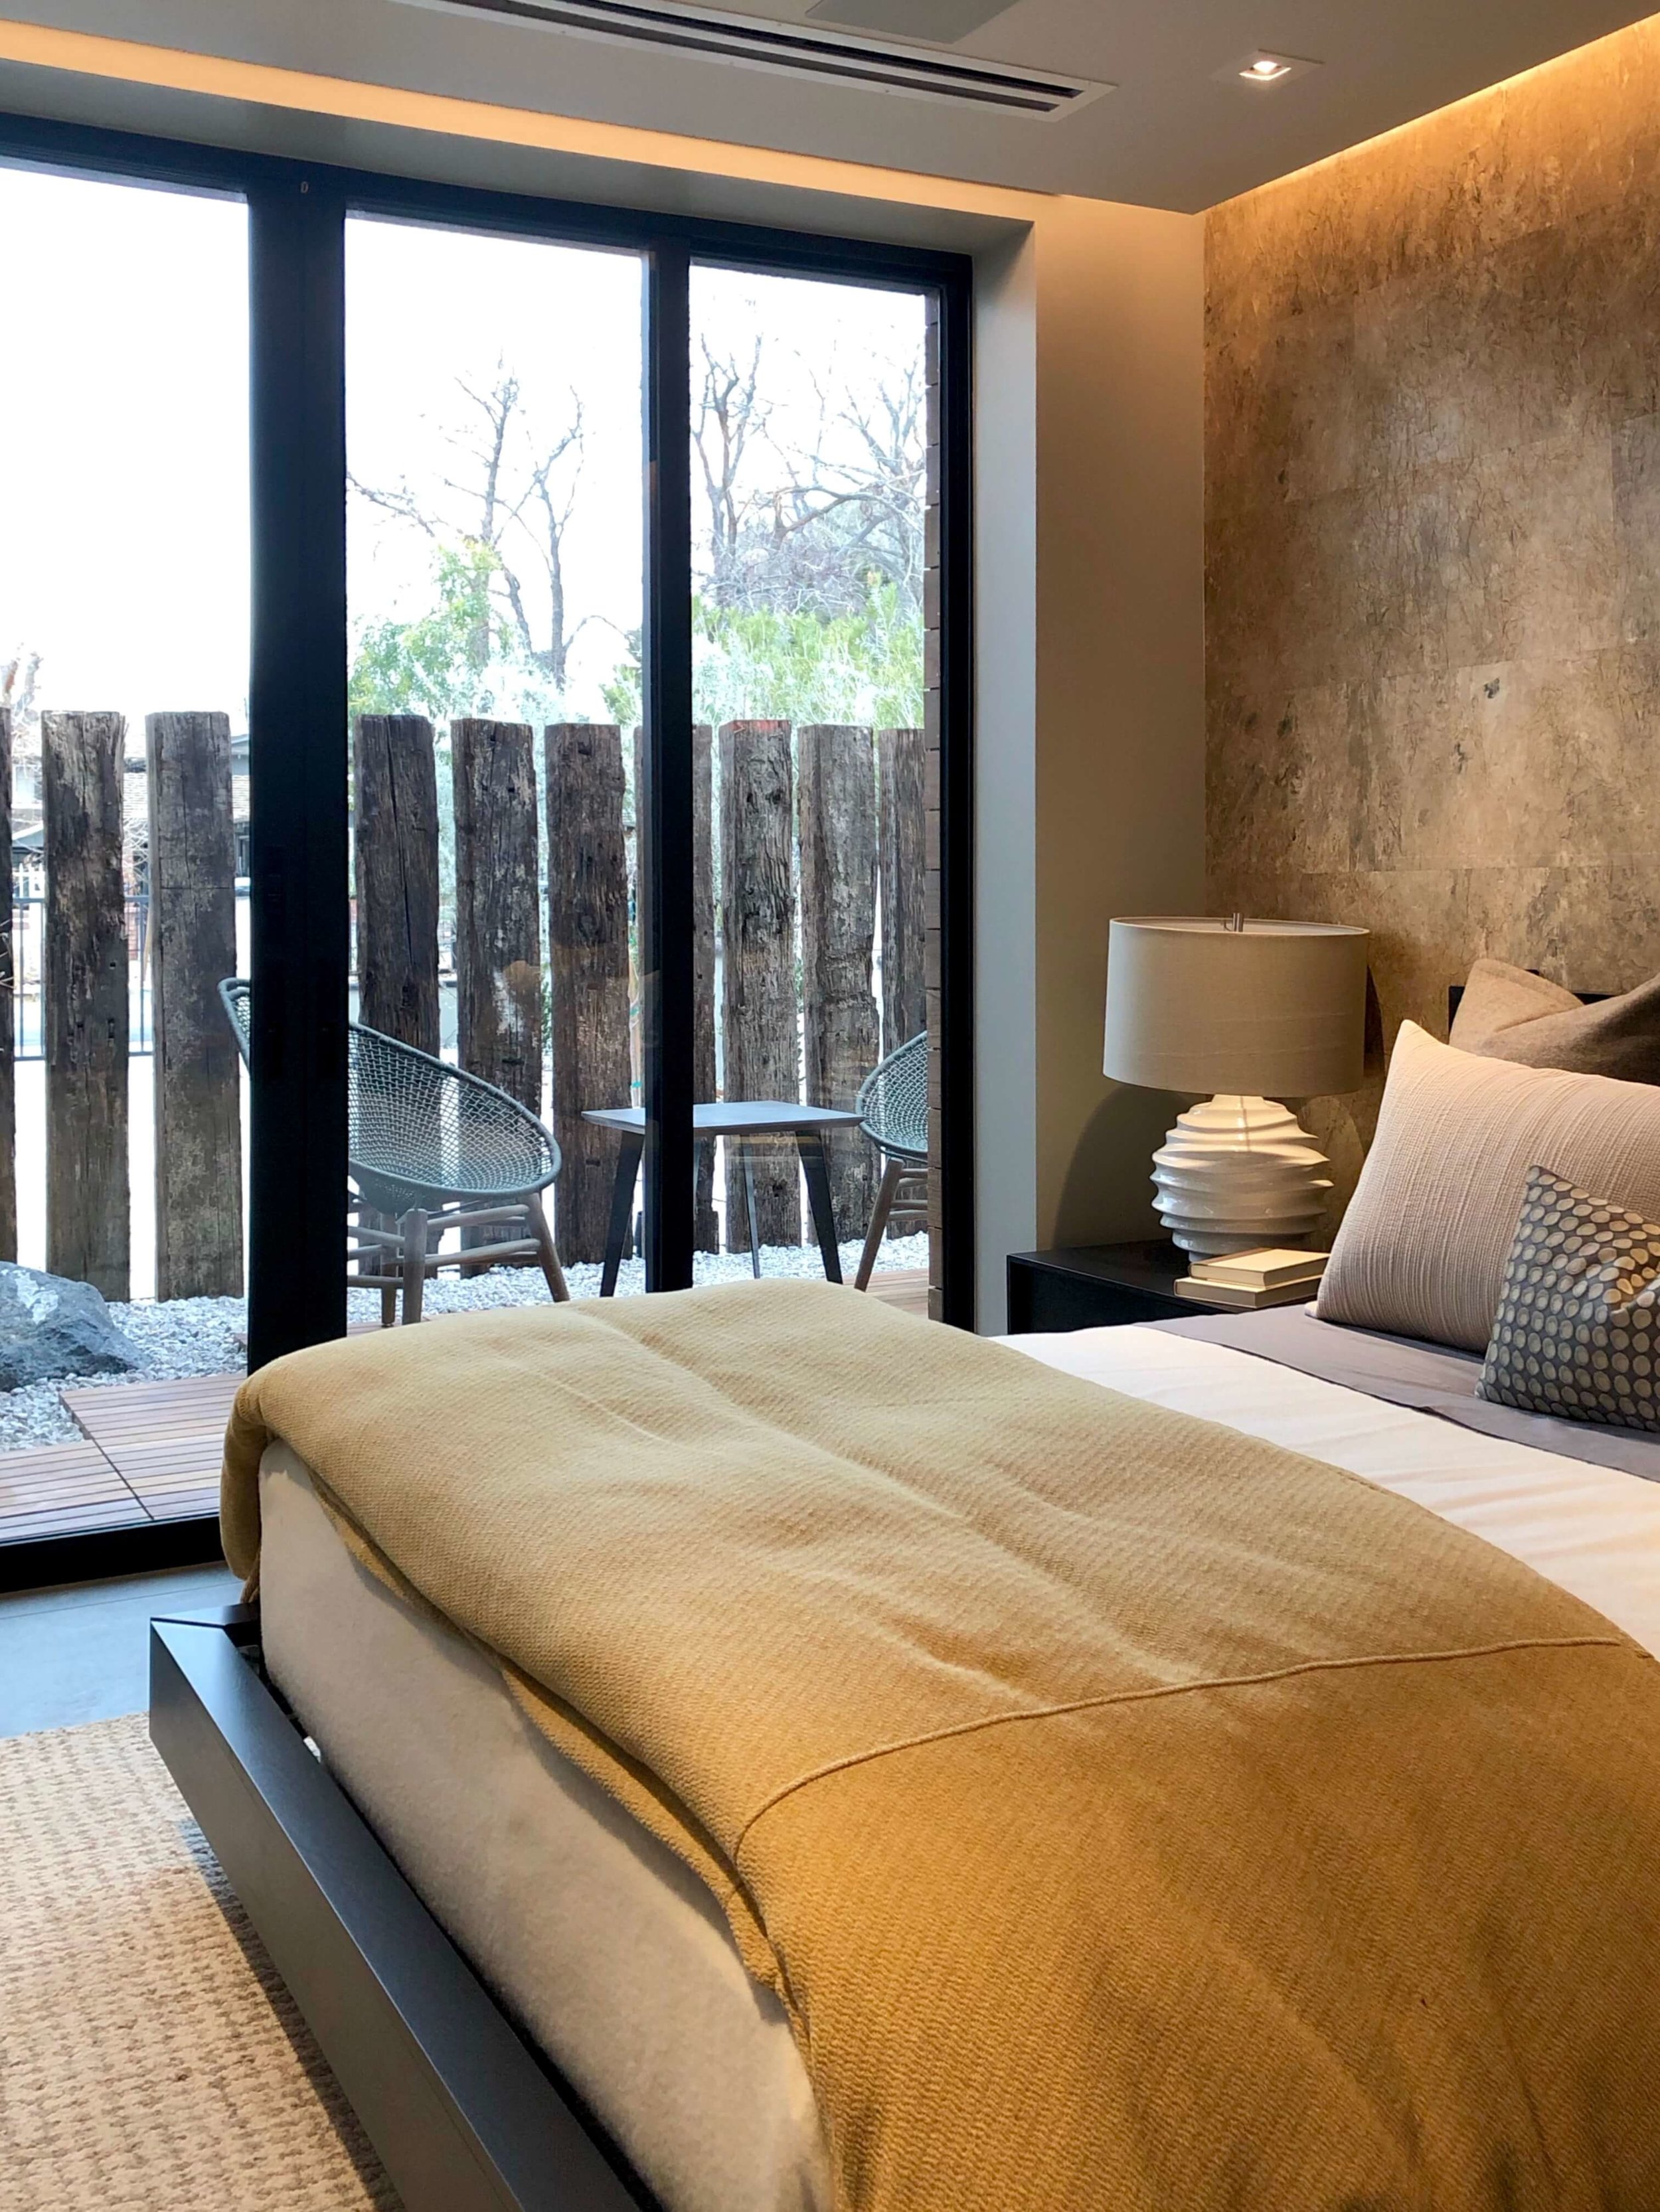 Tone on tone textures create interest and warmth in the guest bedroom at The New American Remodel 2019. #hometour #patio #contemporaryhome #bedroom